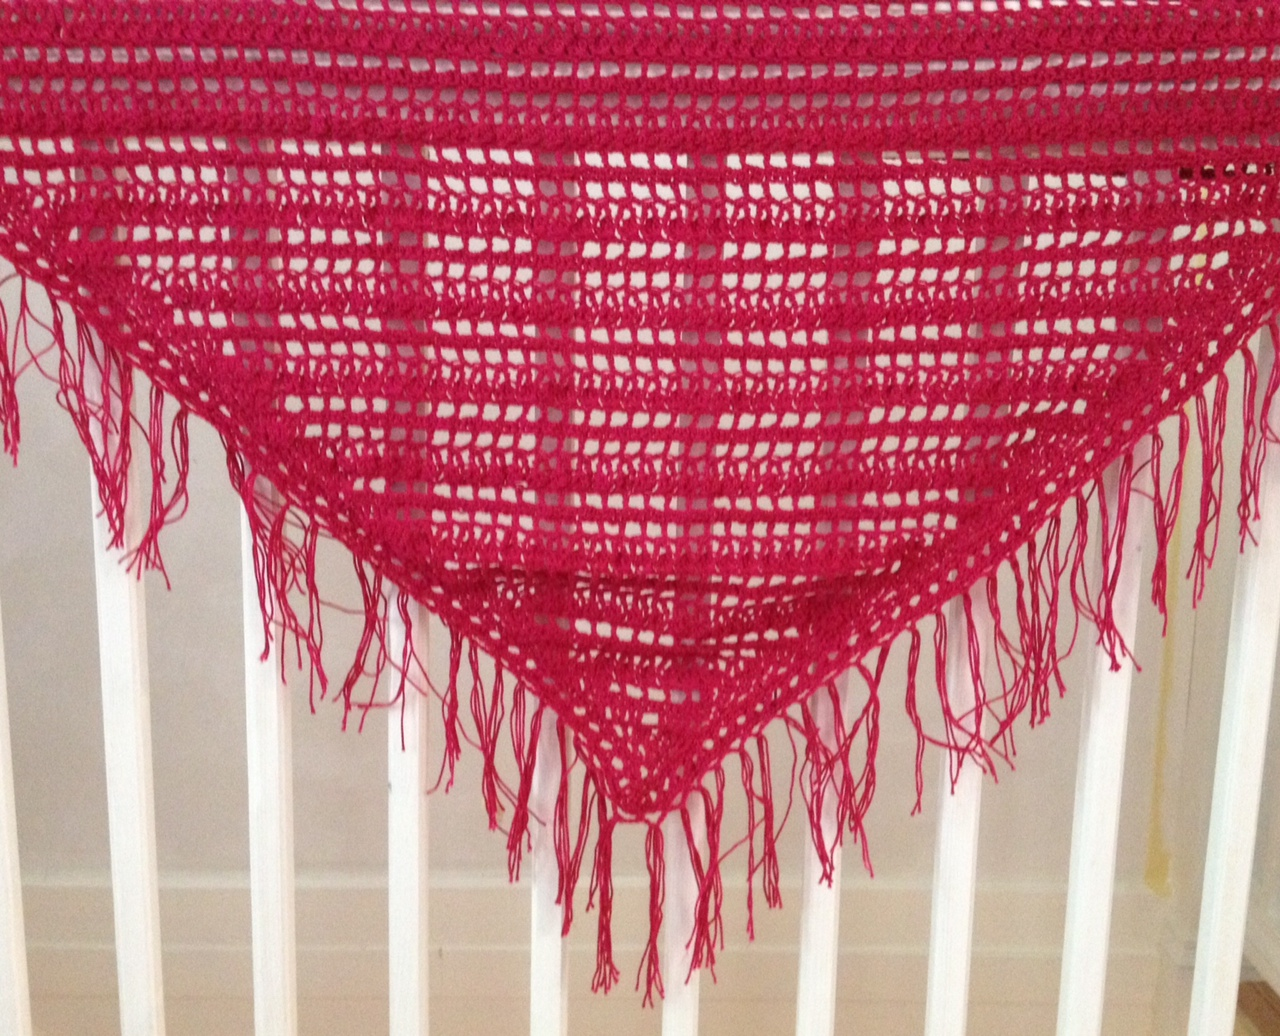 Free crochet pattern for lace triangle_shawl by Liz and Barbara, Howling at the Moon, featured on FineCraftGuild.com